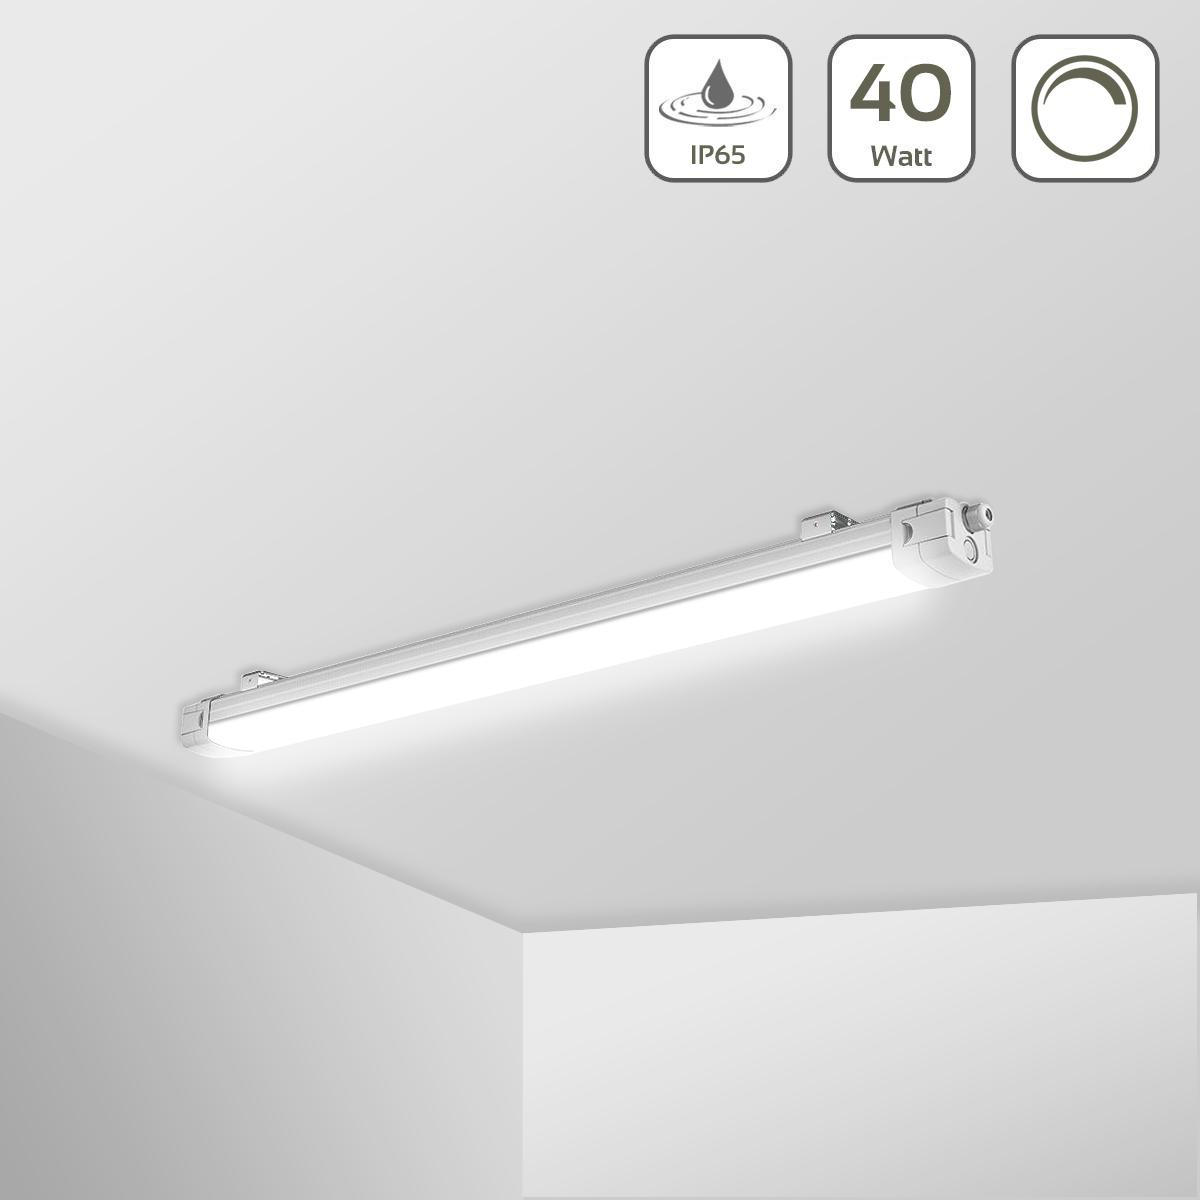 LED Feuchtraumleuchte PRO+ 40W 4000K 1-10V dimmbar